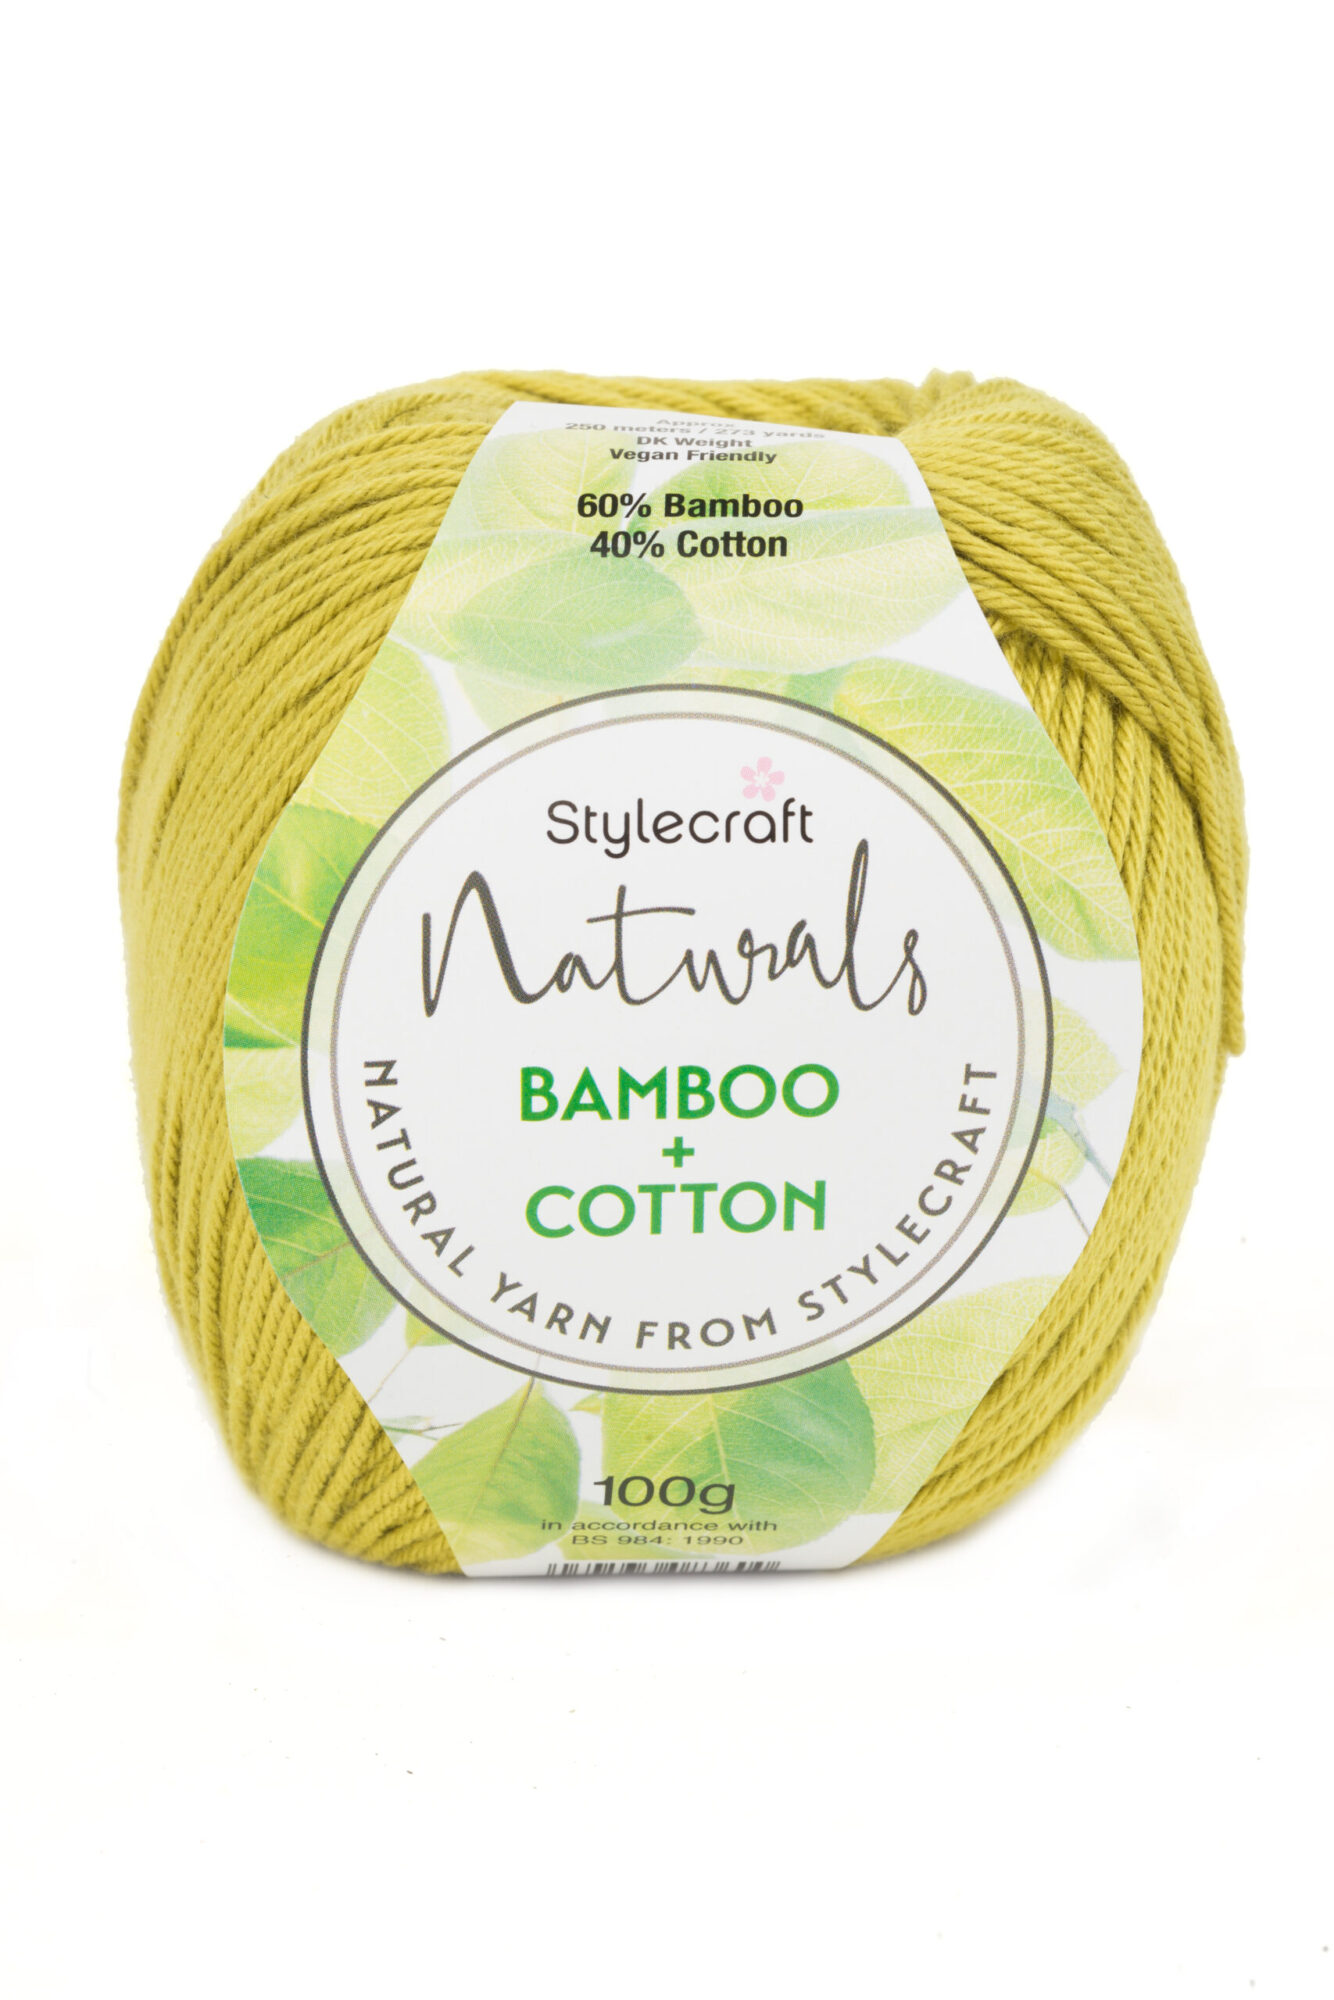 Stylecraft Naturals Bamboo + Cotton product image